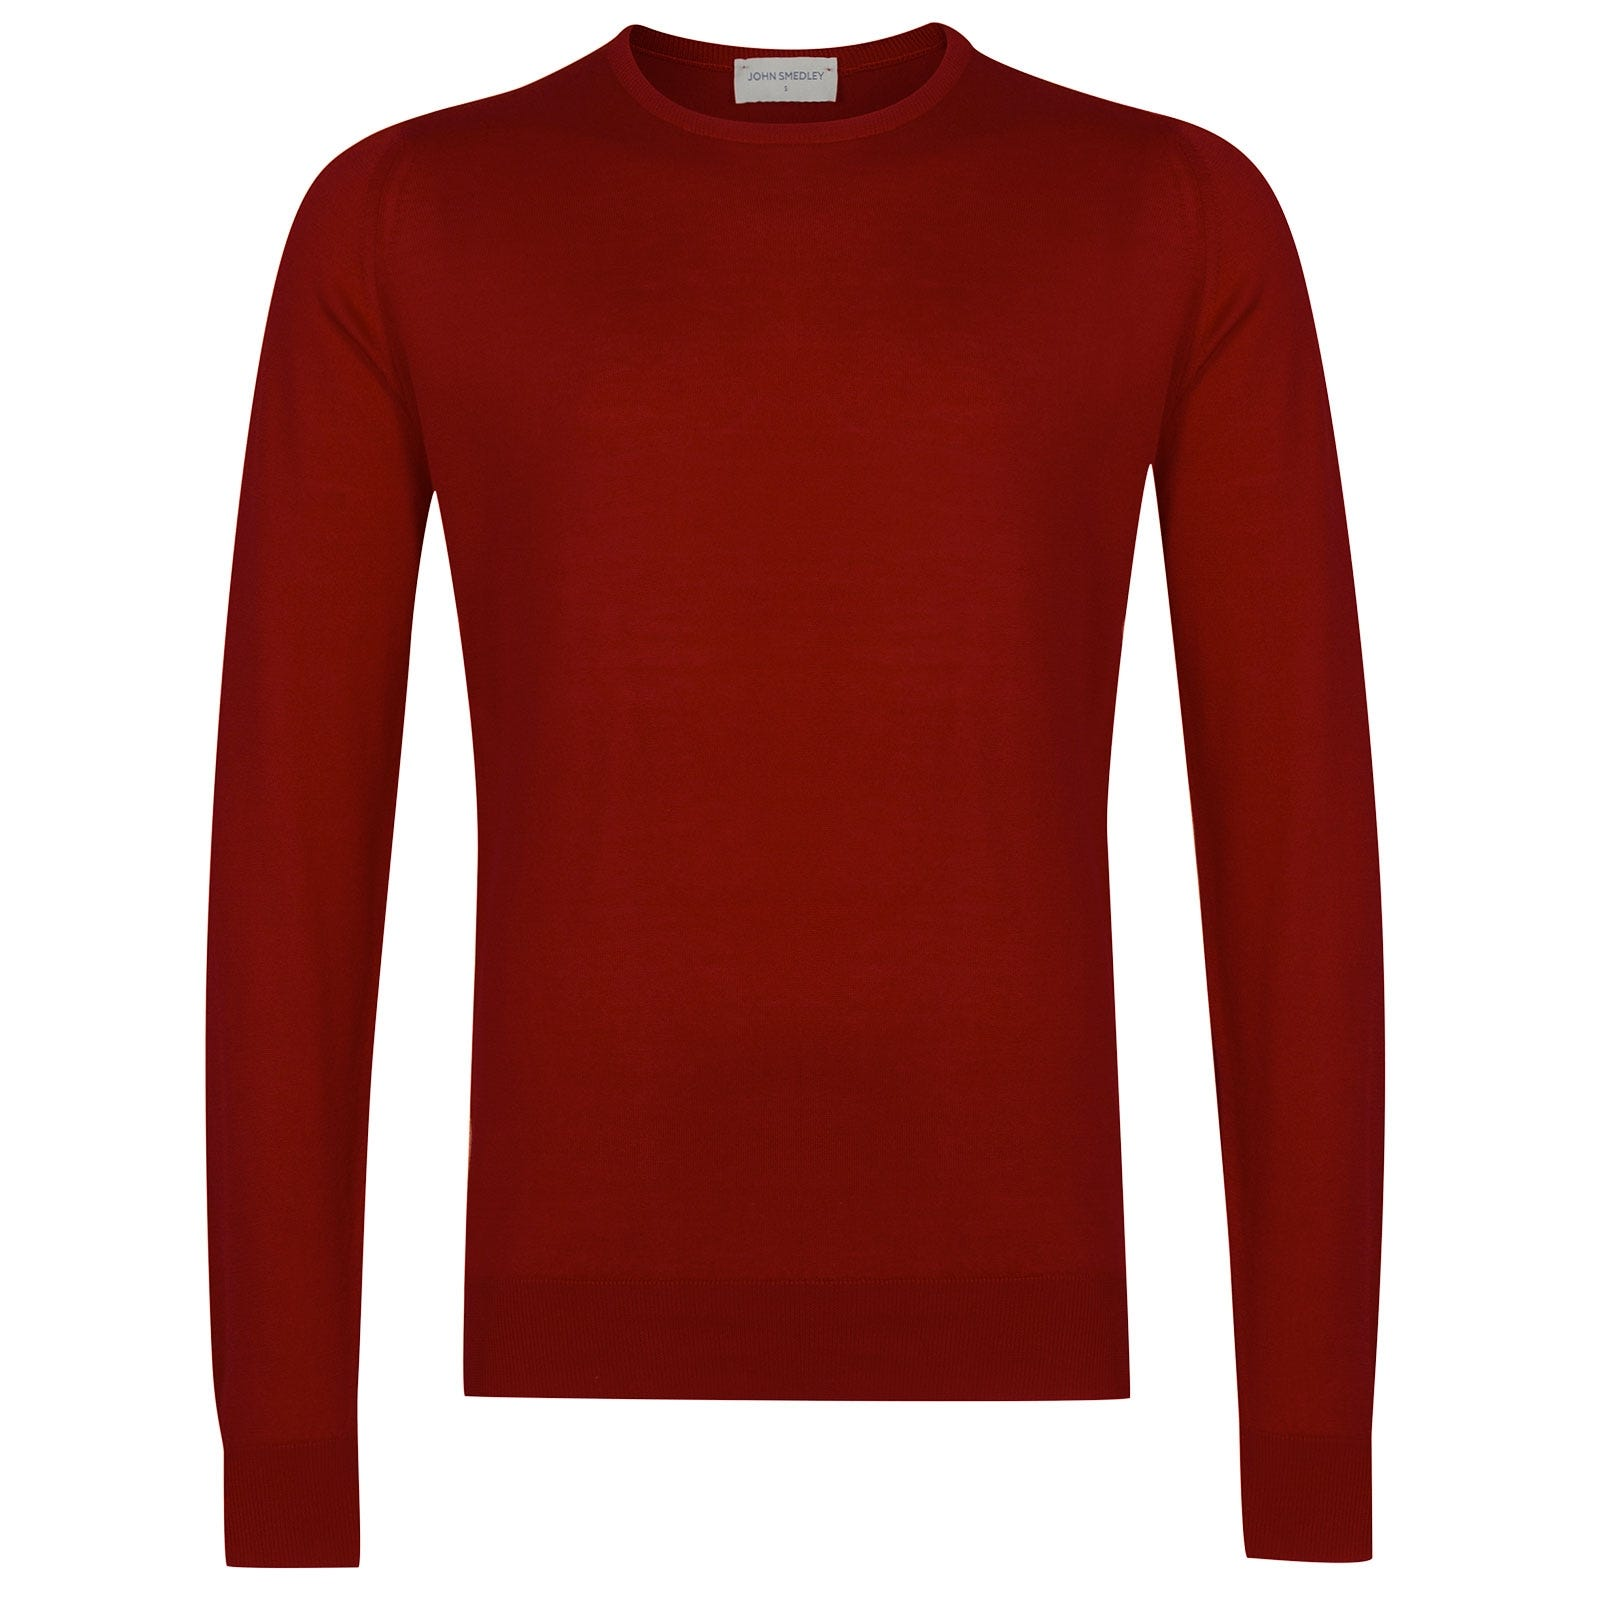 John Smedley Hatfield Sea Island Cotton Pullover in Thermal Red-XL